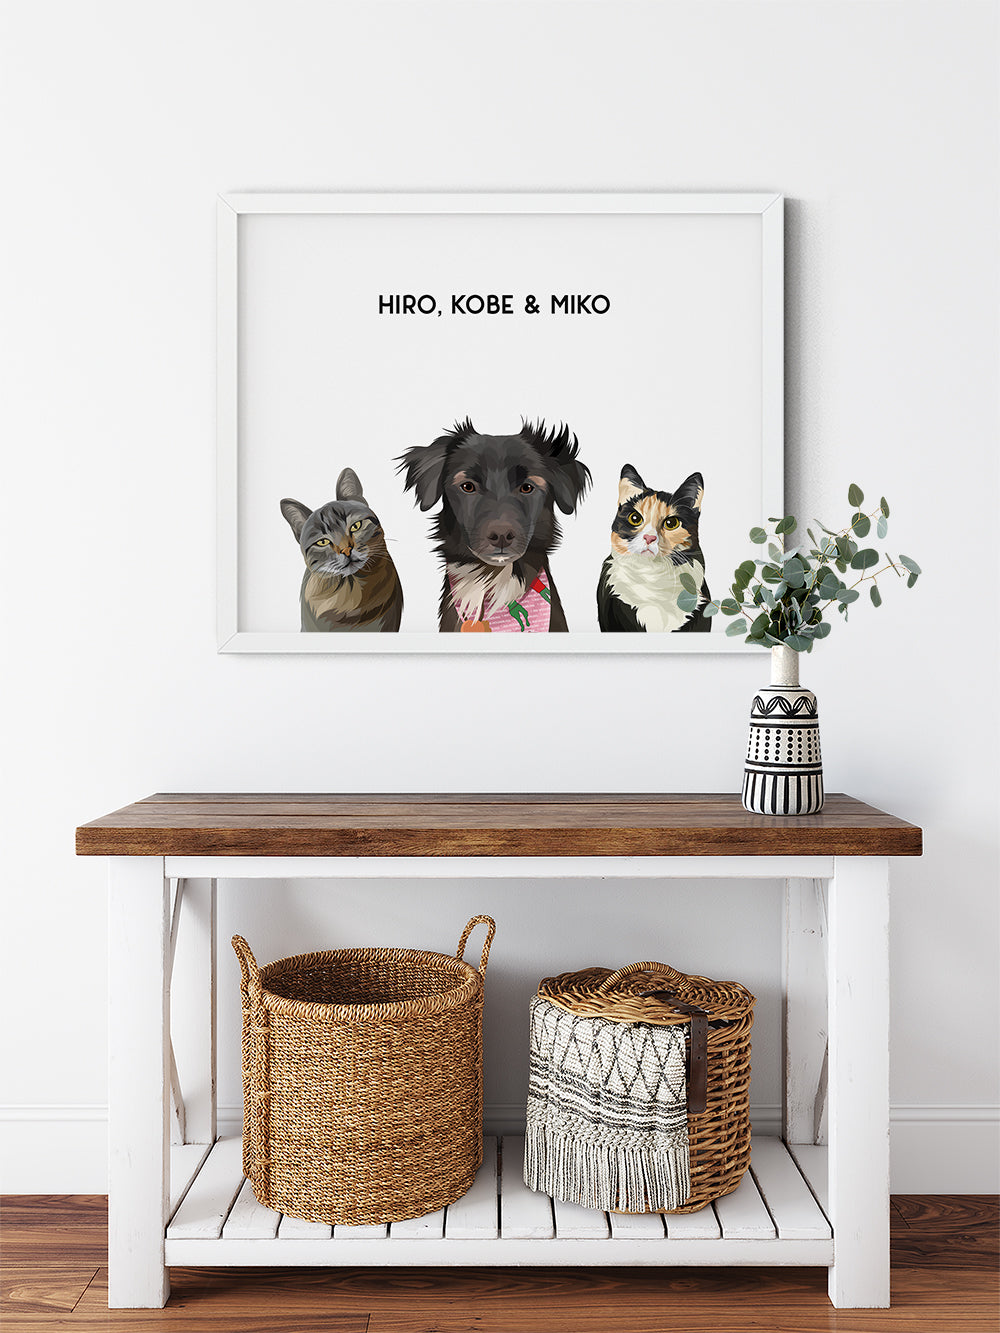 Trio custom framed pet portrait of a cat, dog and cat on cloud white background with white frame. Personalized name of cat, dog and cat in black font.